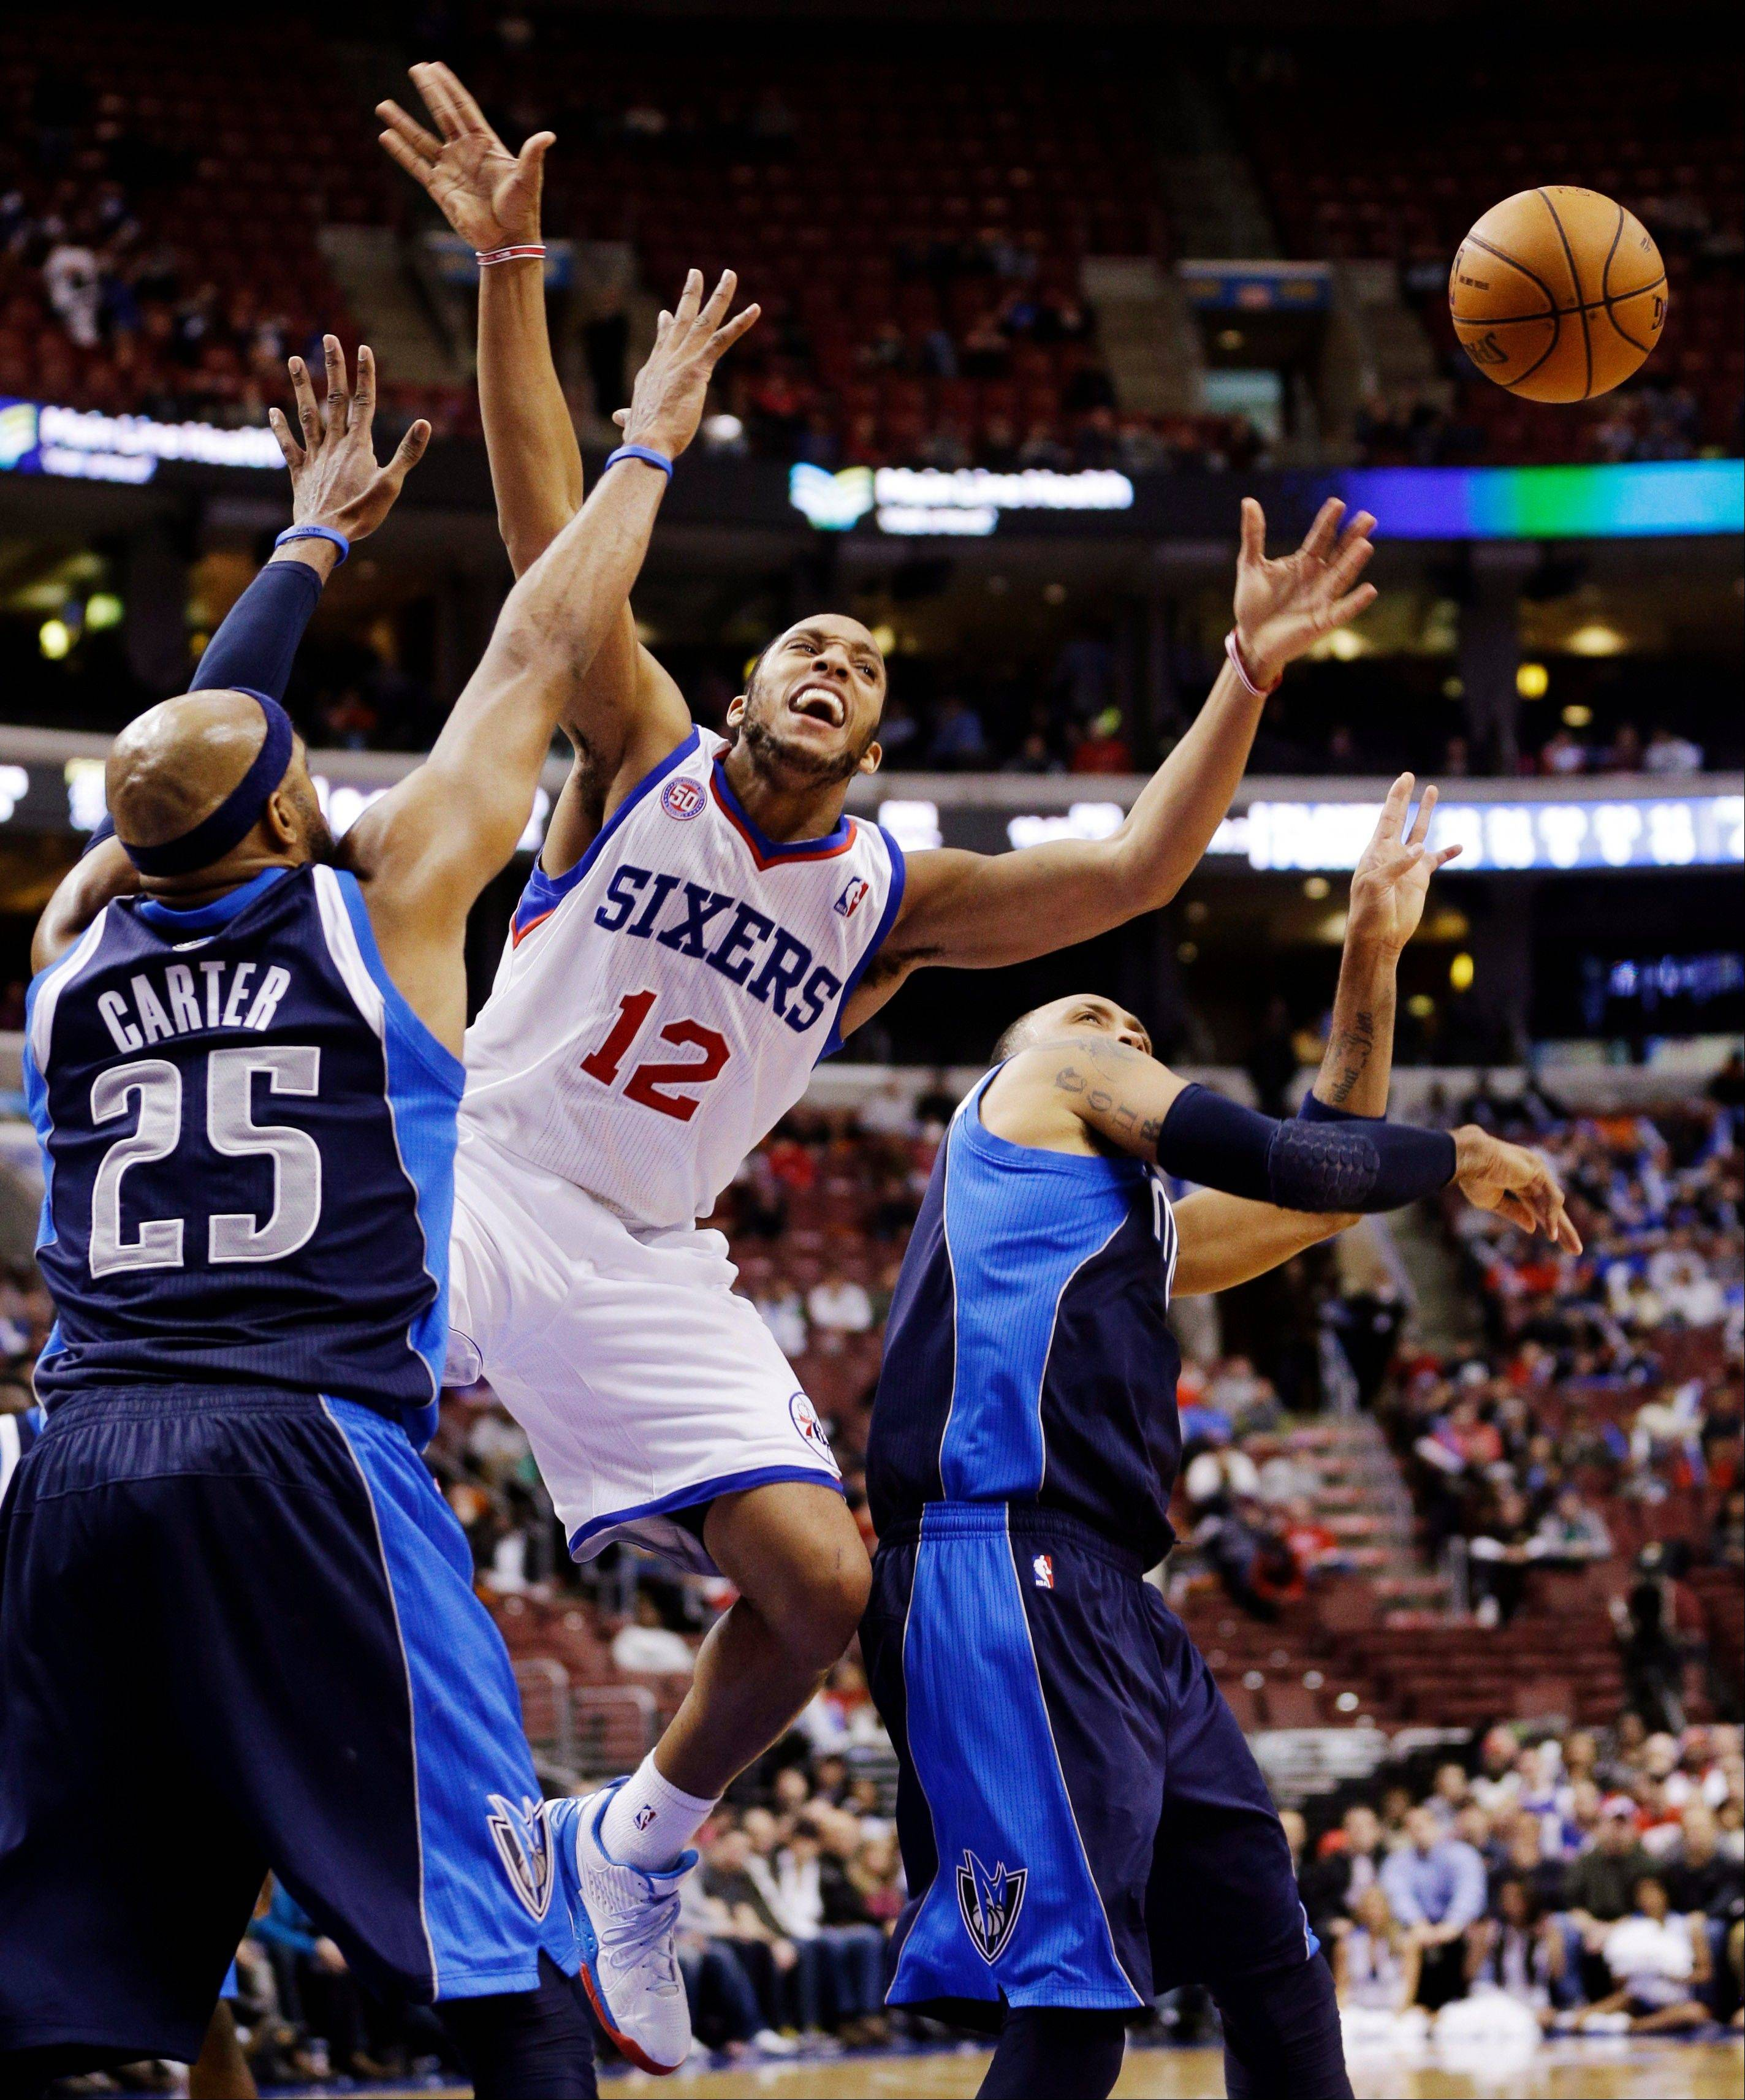 Philadelphia 76ers� Evan Turner, center, loses the ball against Dallas Mavericks� Vince Carter (25) and Shawn Marion Tuesday during the second half in Philadelphia. Philadelphia won 100-98.